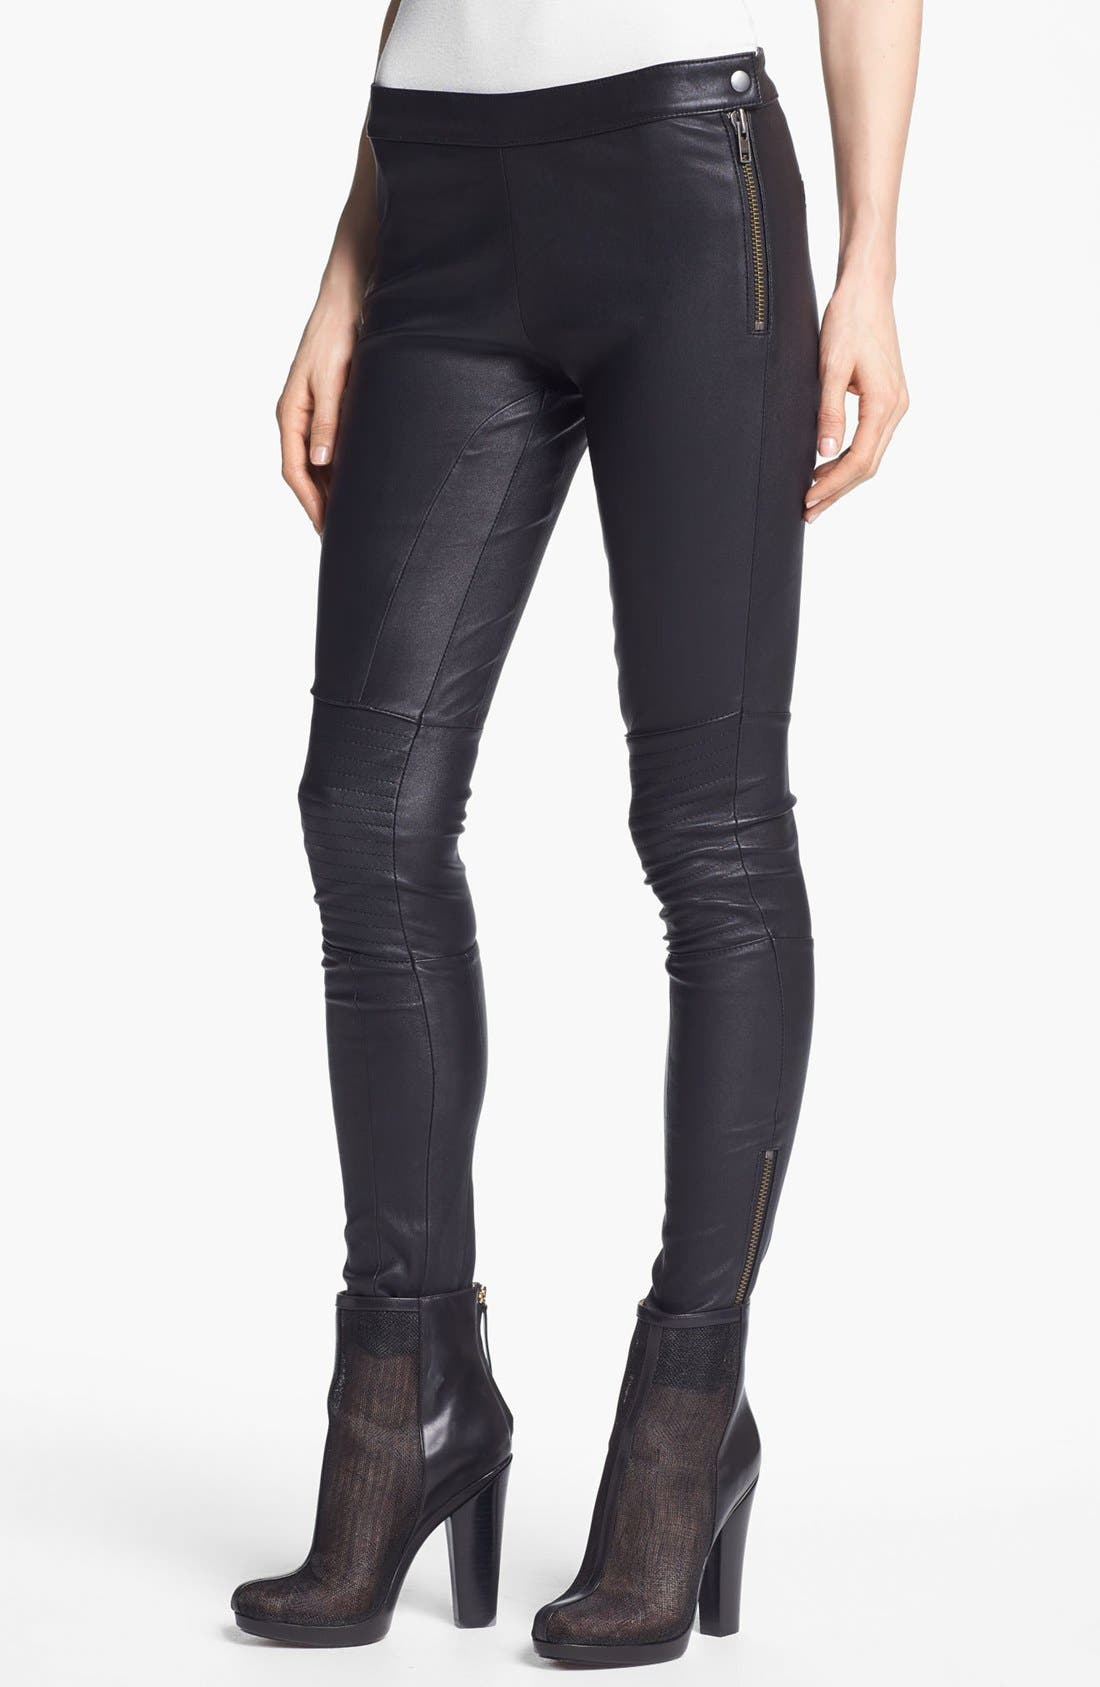 Main Image - Rachel Zoe 'Maxine' Skinny Stretch Leather Pants